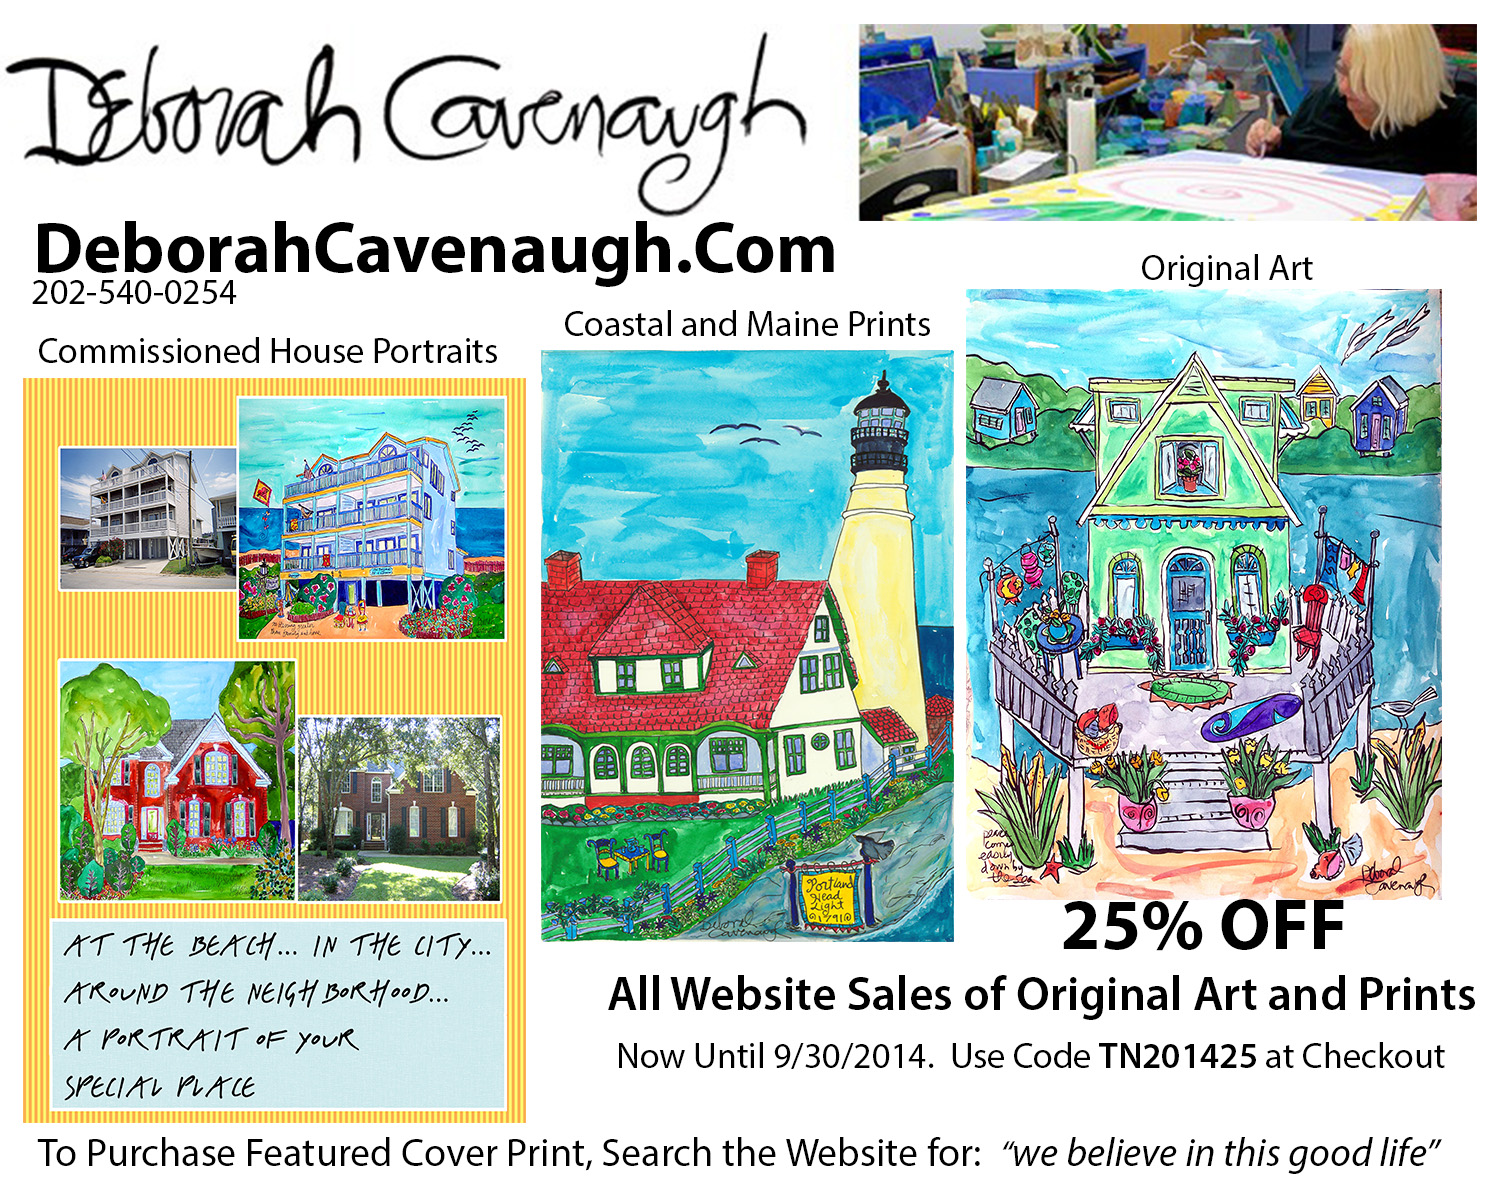 Deborah_Cavenaugh_Tourist_News_Ad_2014.jpg